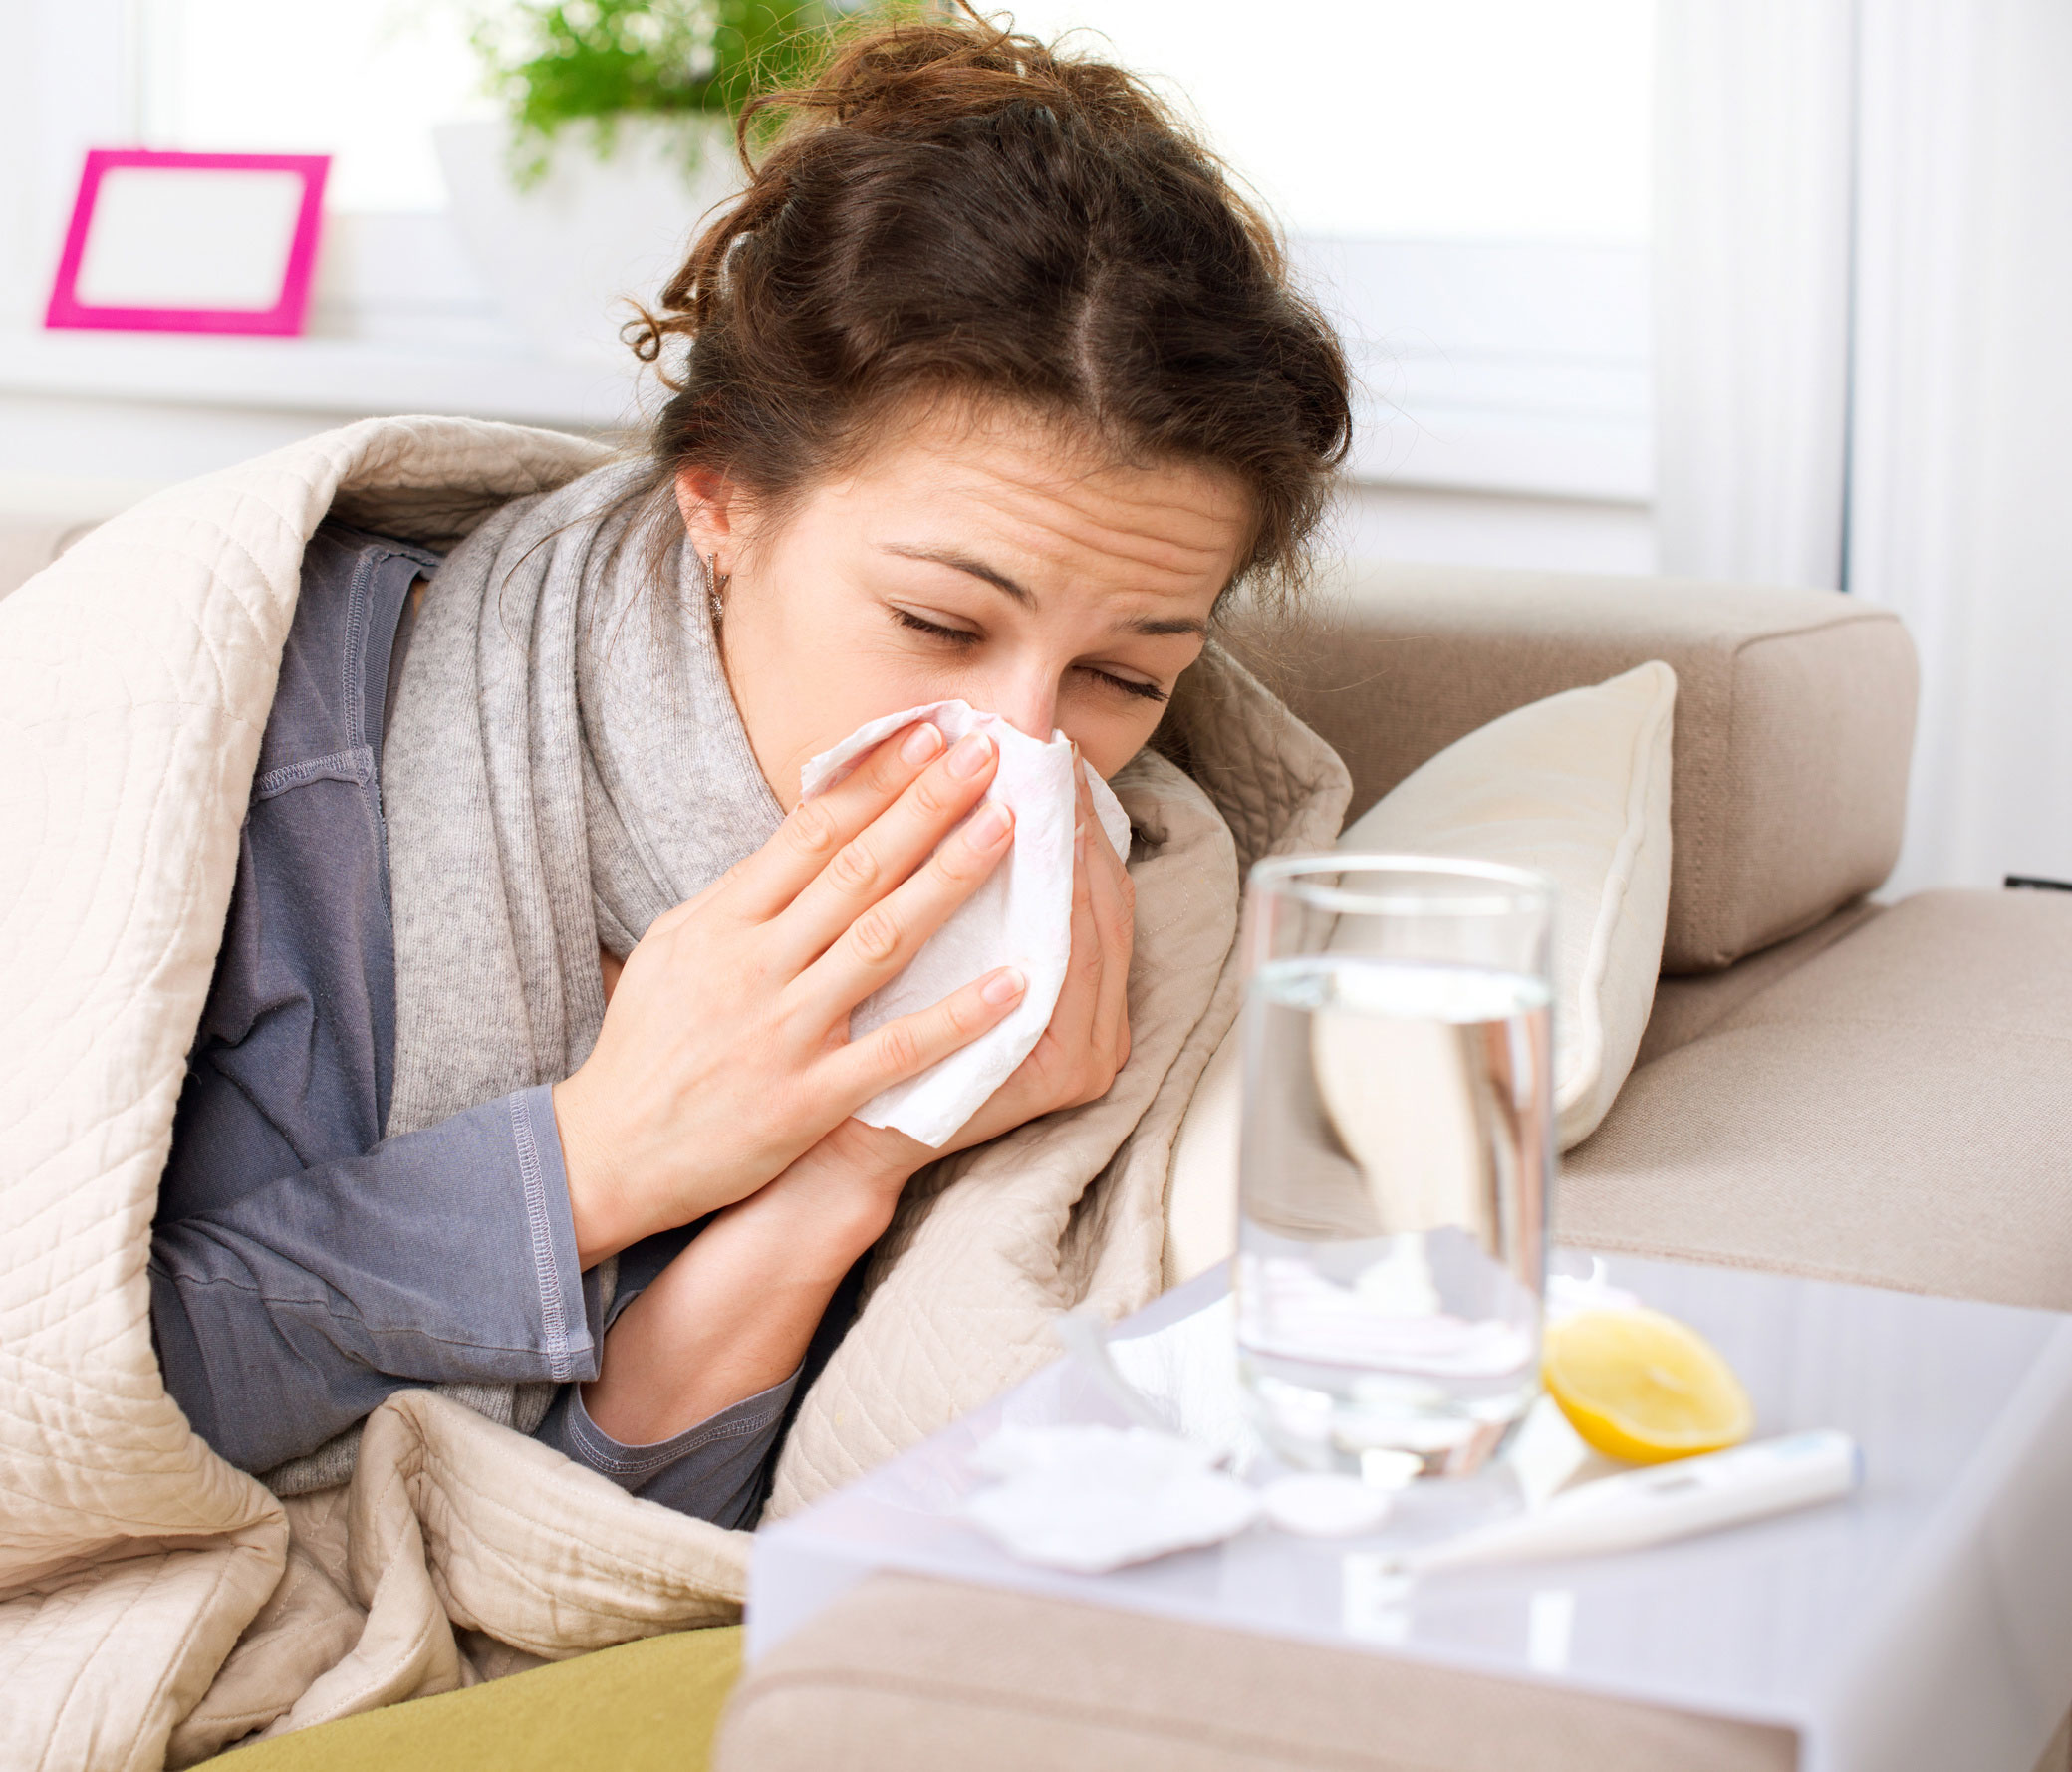 Tips for easing cold and flue natureloc